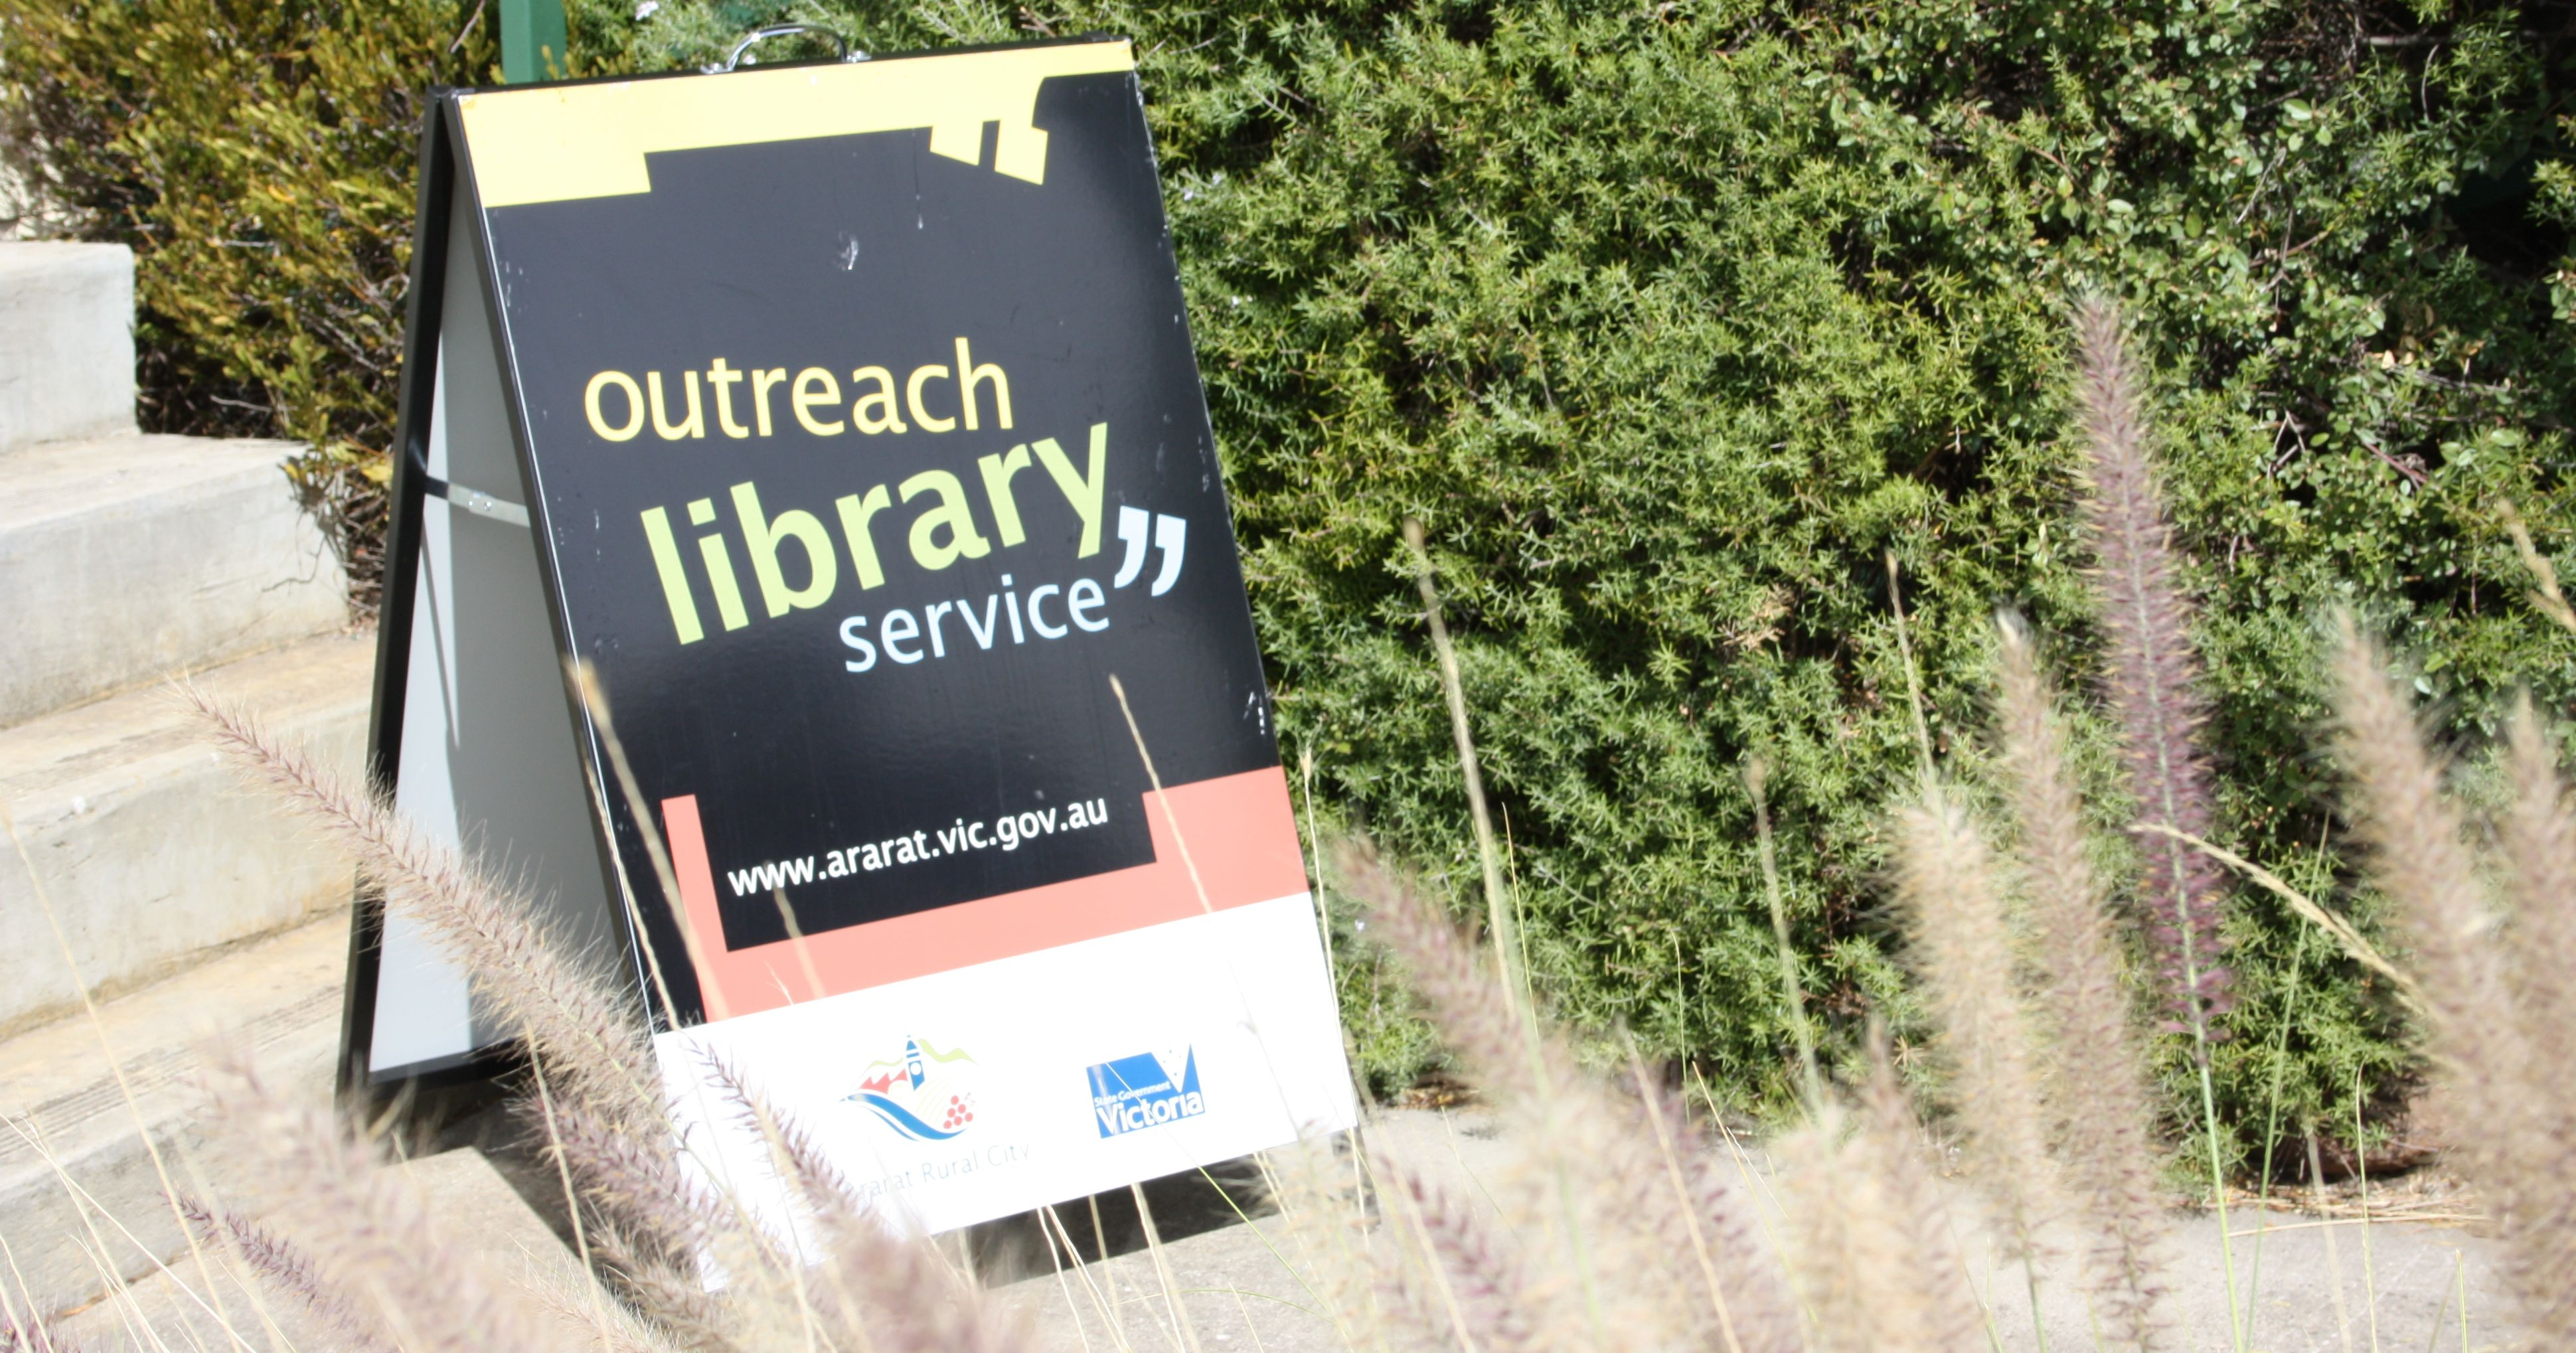 Library Outreach